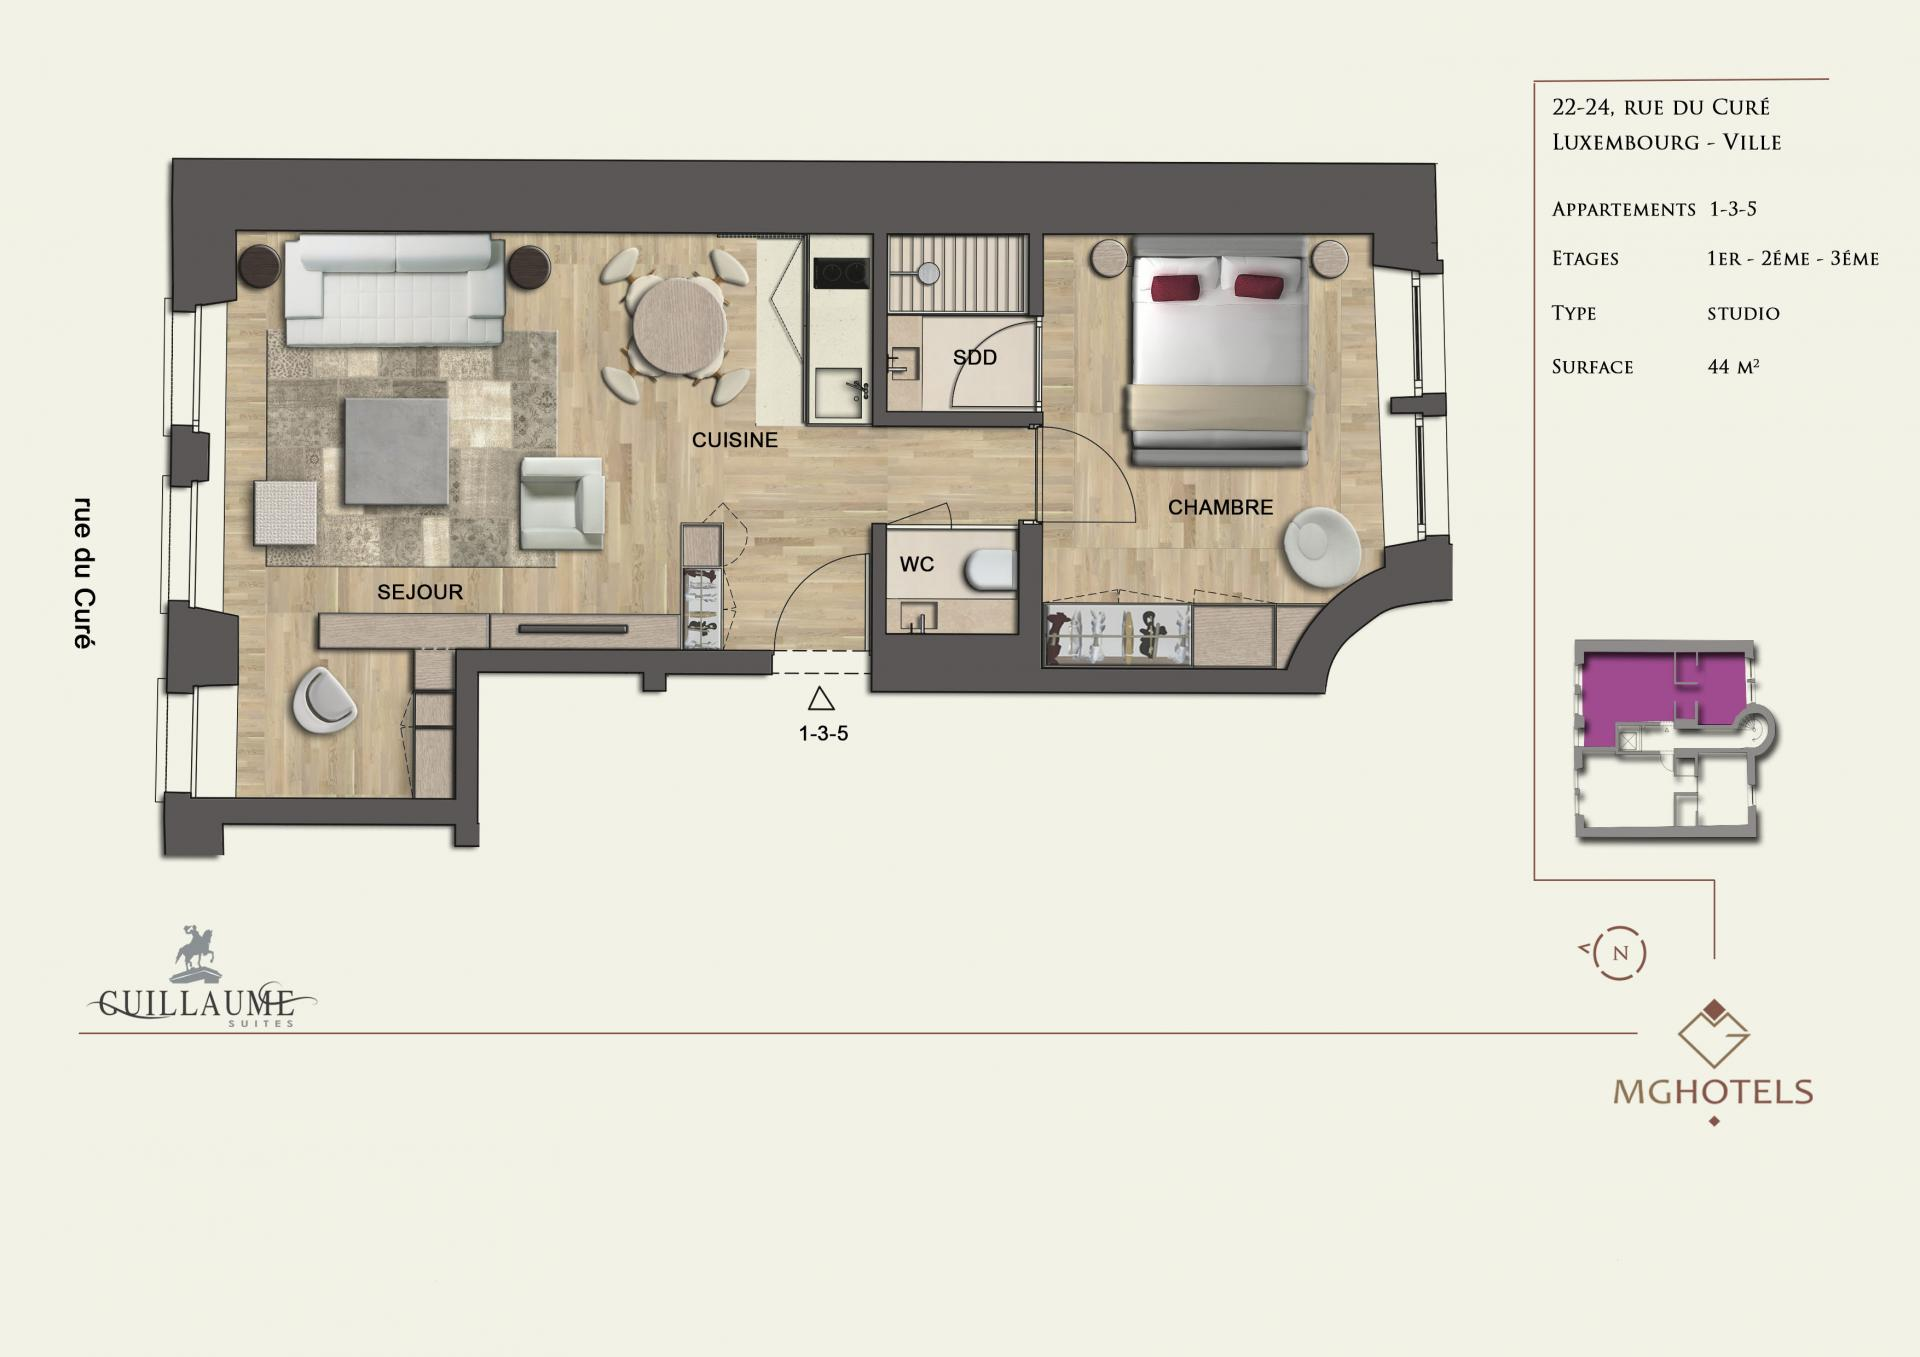 Floor plan 1 at Guillaume Suites, Centre, Luxembourg